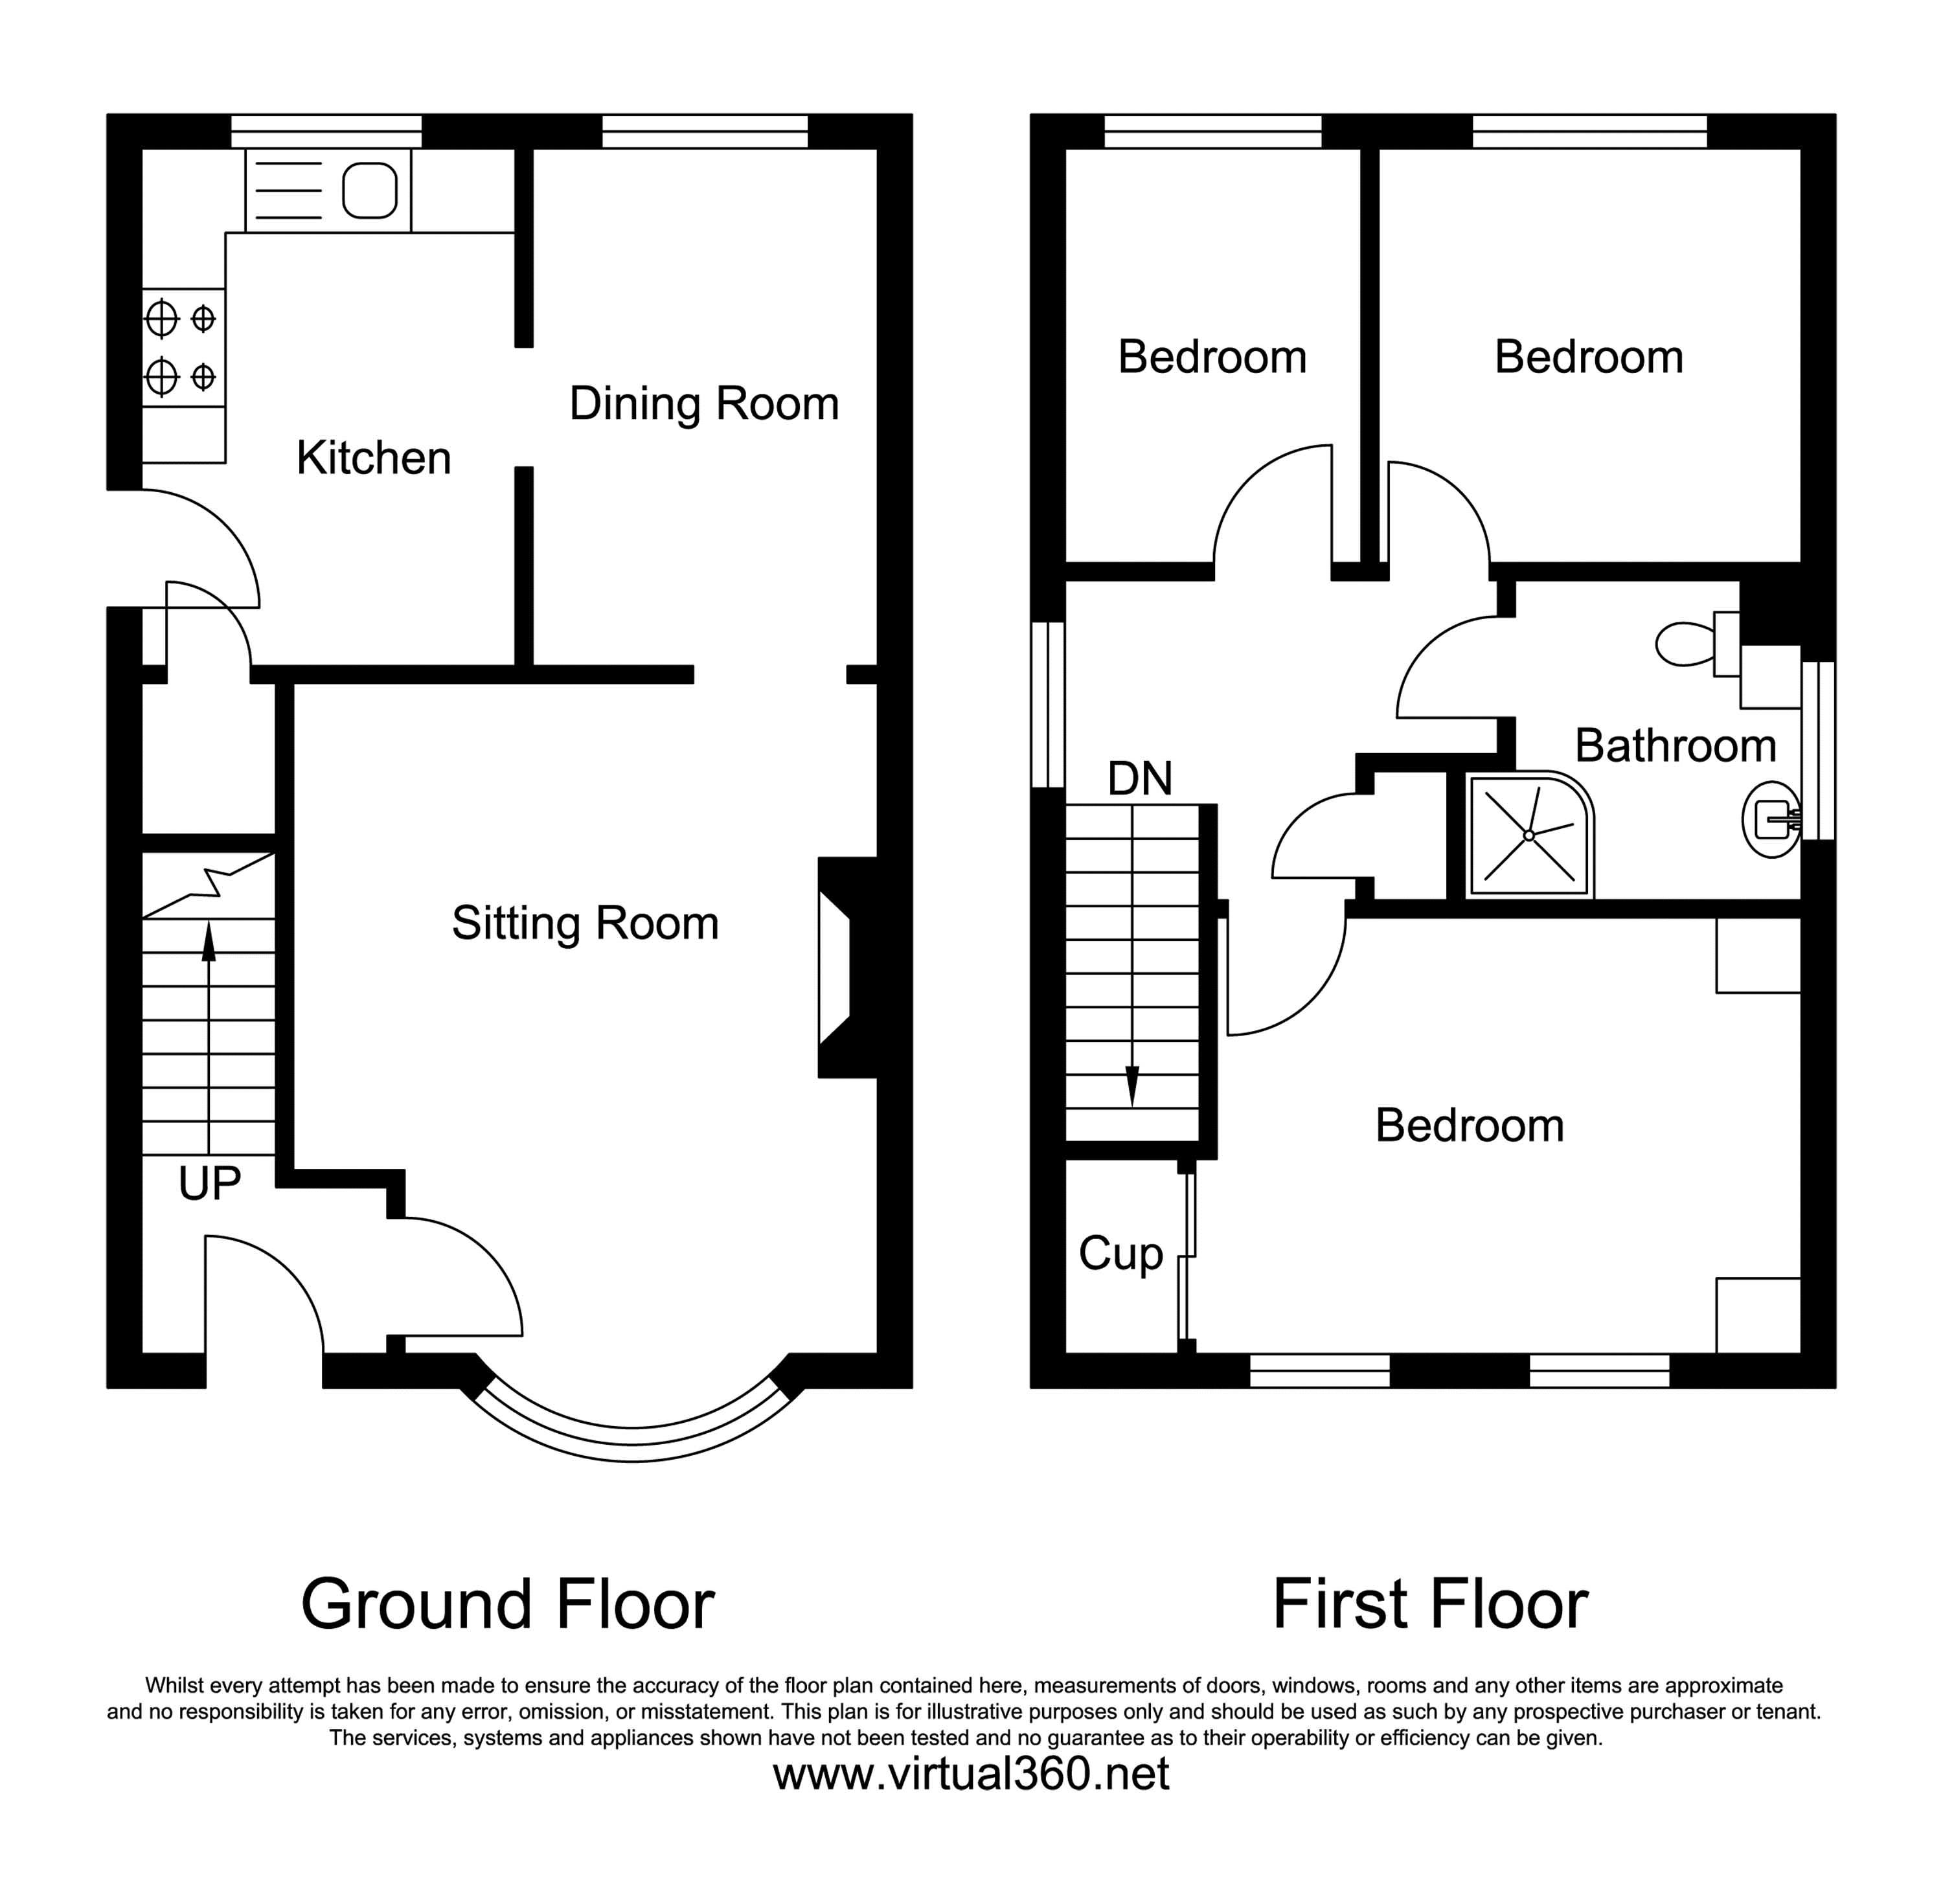 Rochford Drive, Luton floor plan